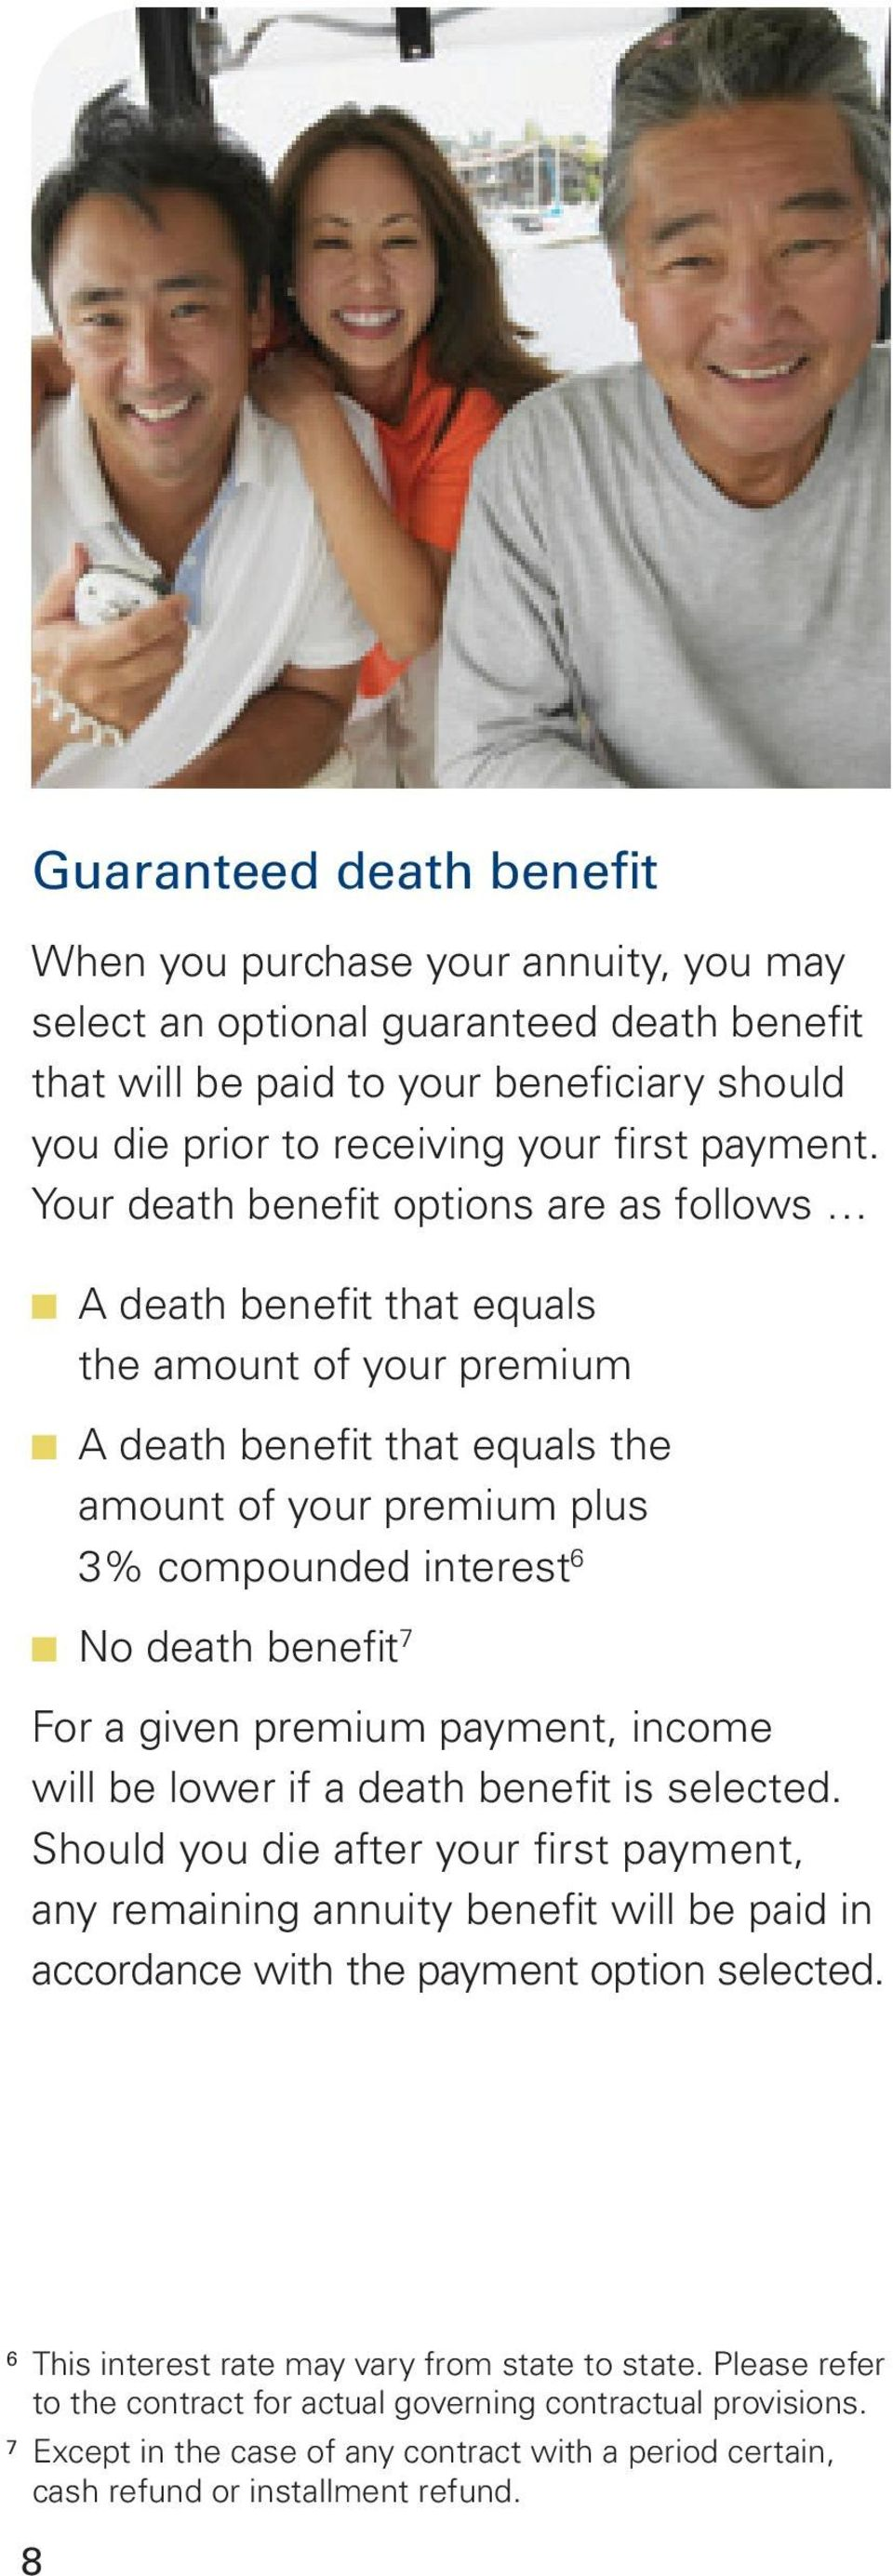 7 For a given premium payment, income will be lower if a death benefit is selected.